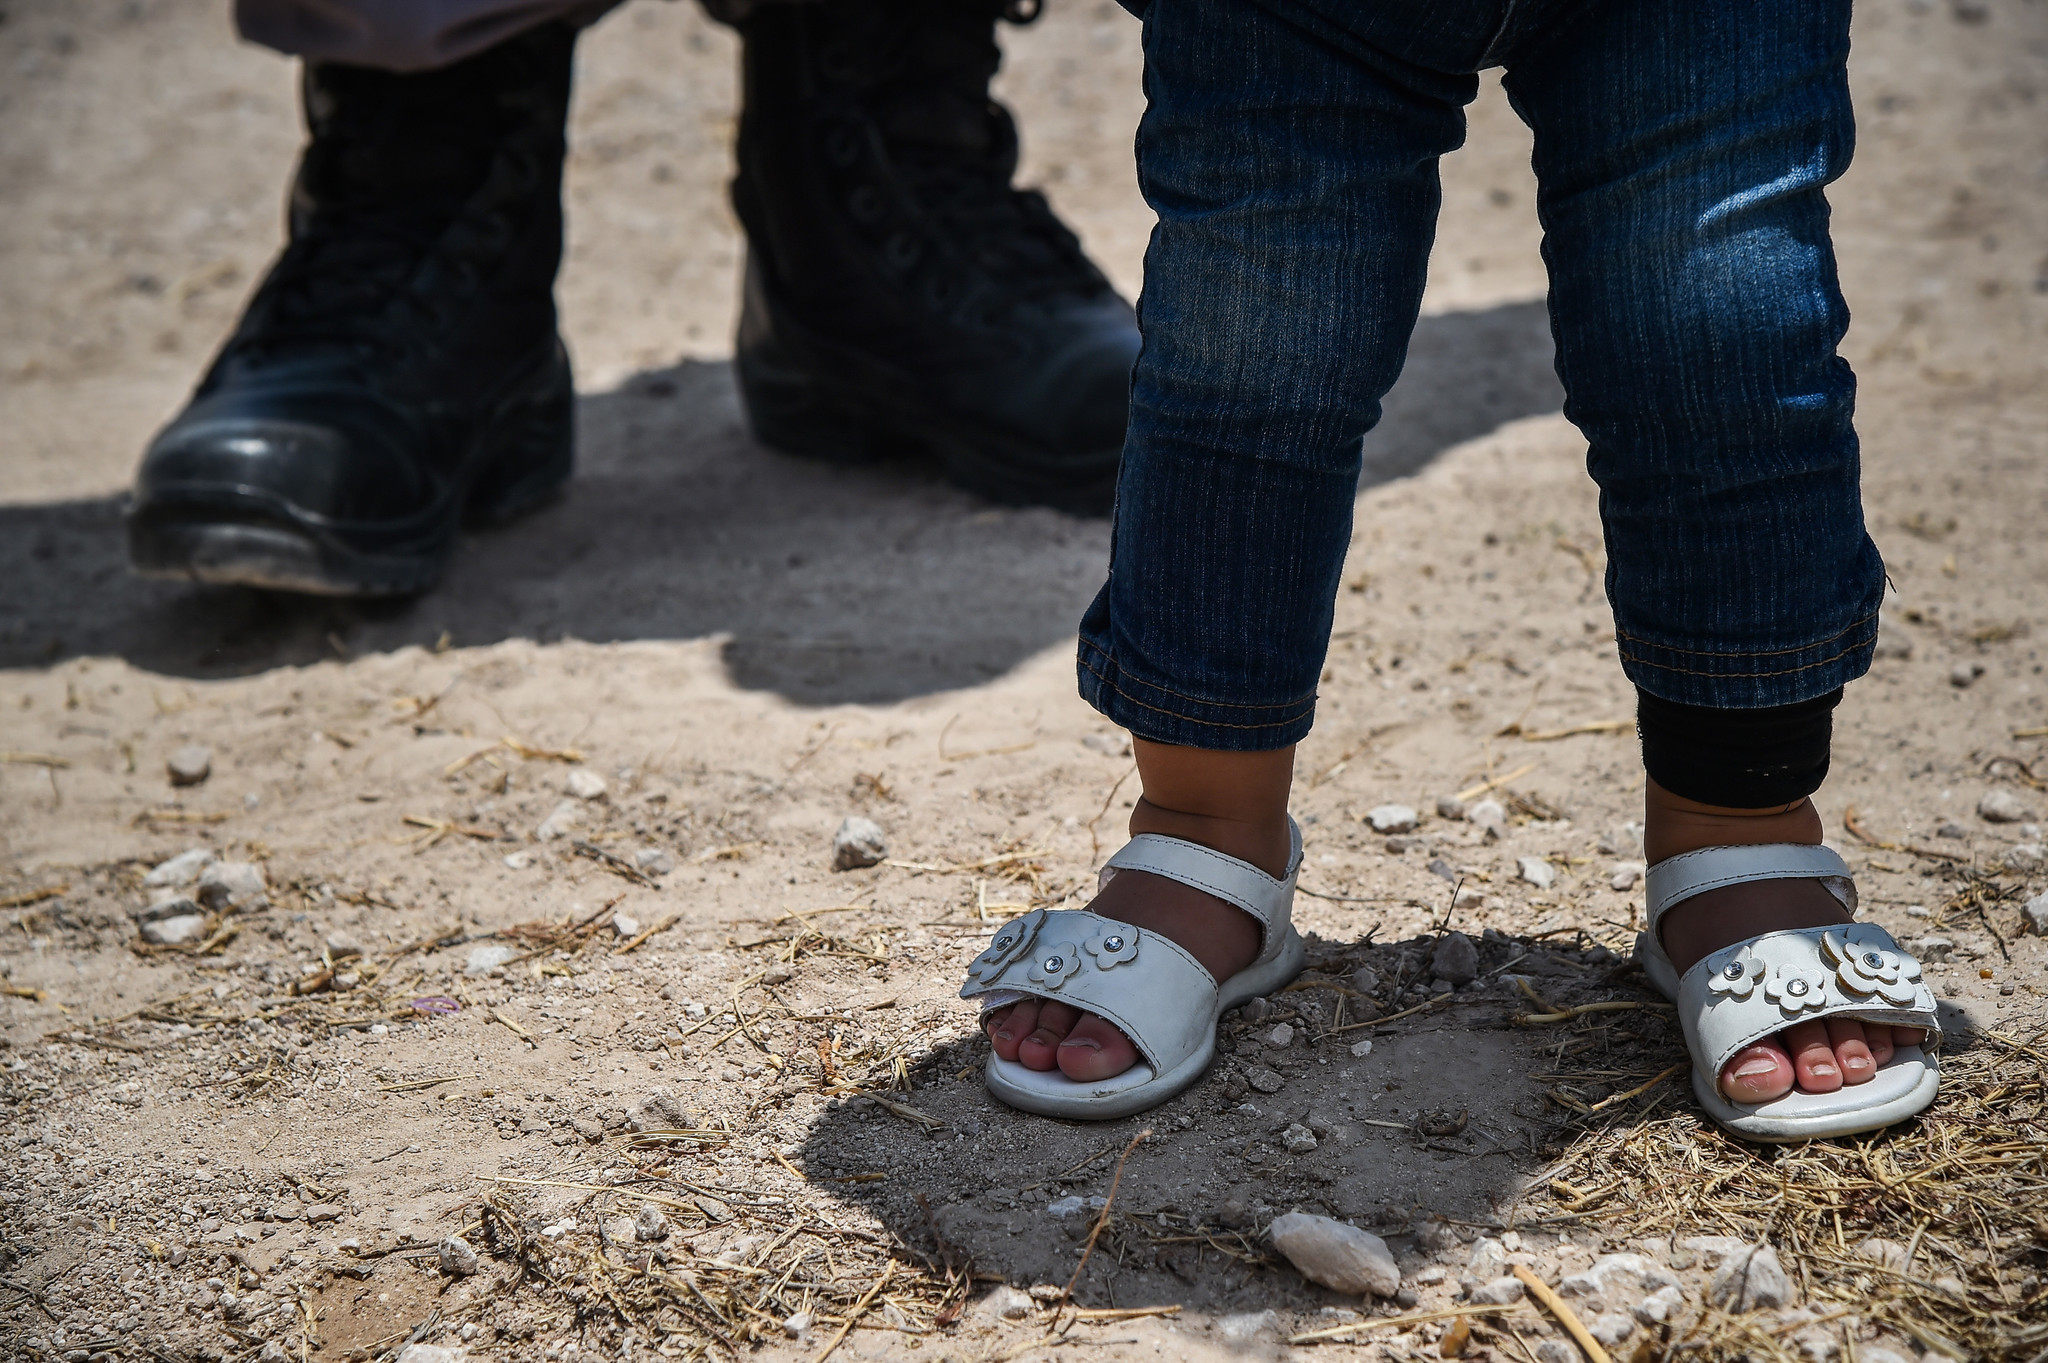 Texas sheriff refuses to help feds guard migrant children tent city, saying 'it's wrong' - Chicago Tribune